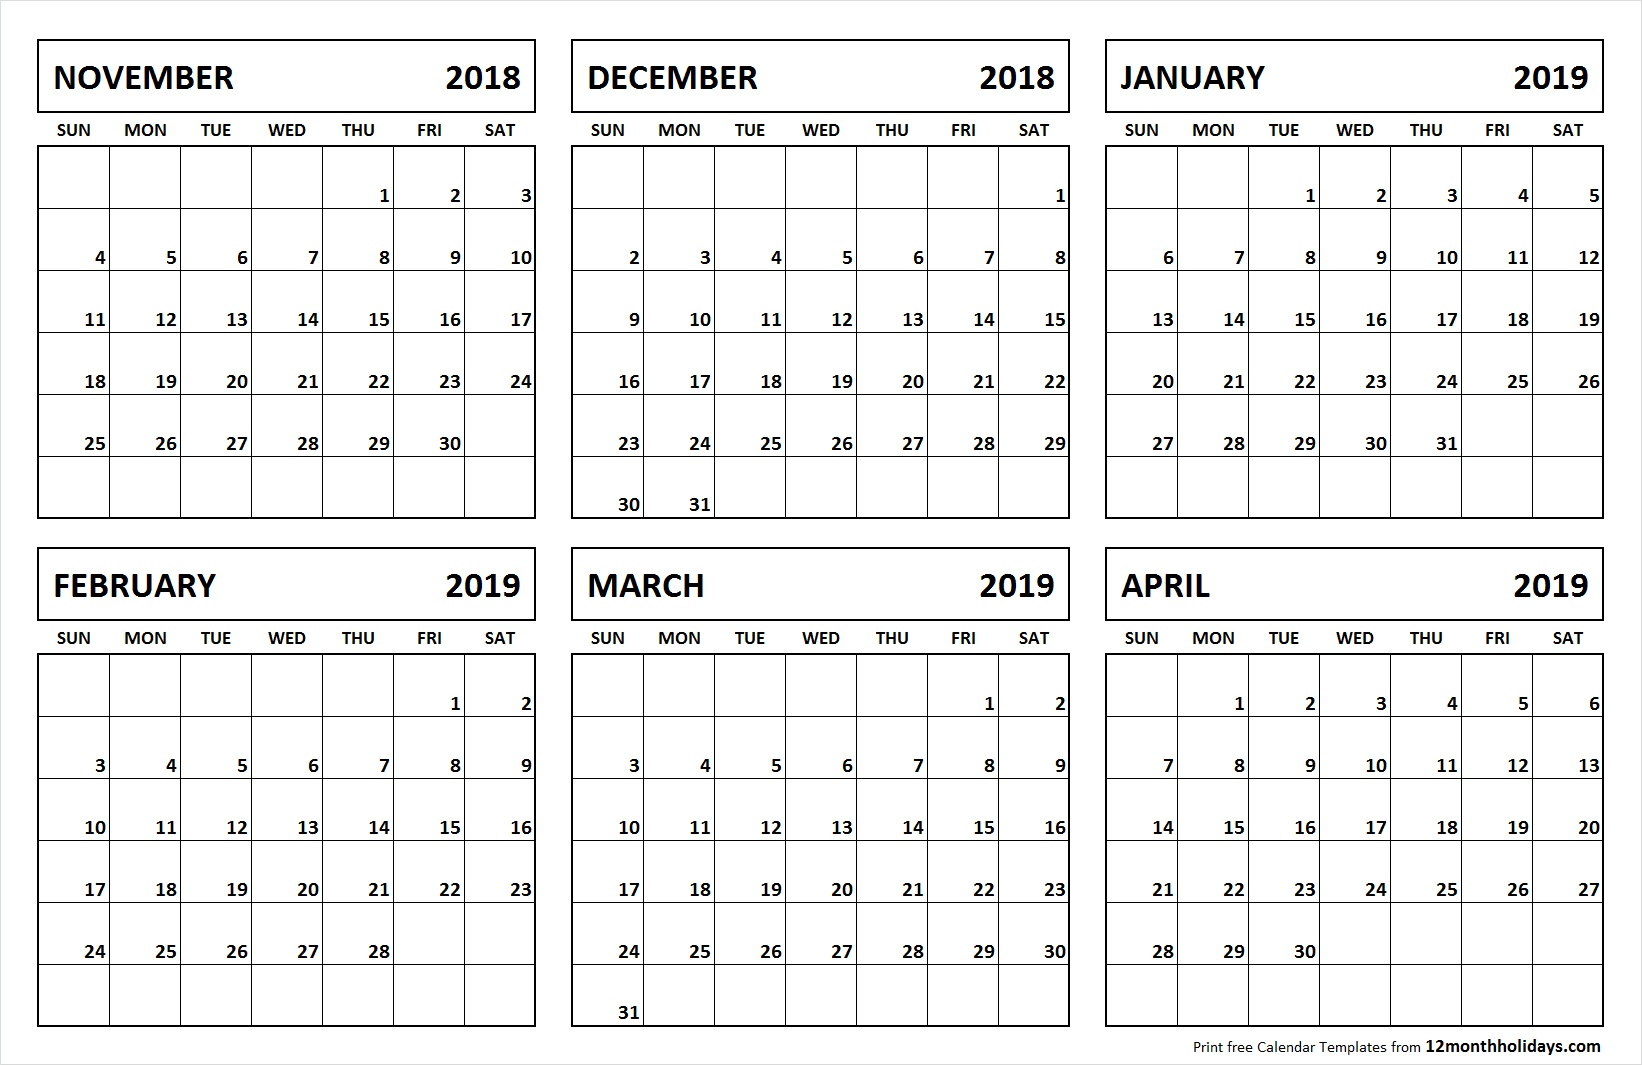 Printable Blank 6 Month Calendar November 2018 April 2019 inside 6 Month Calendar Template